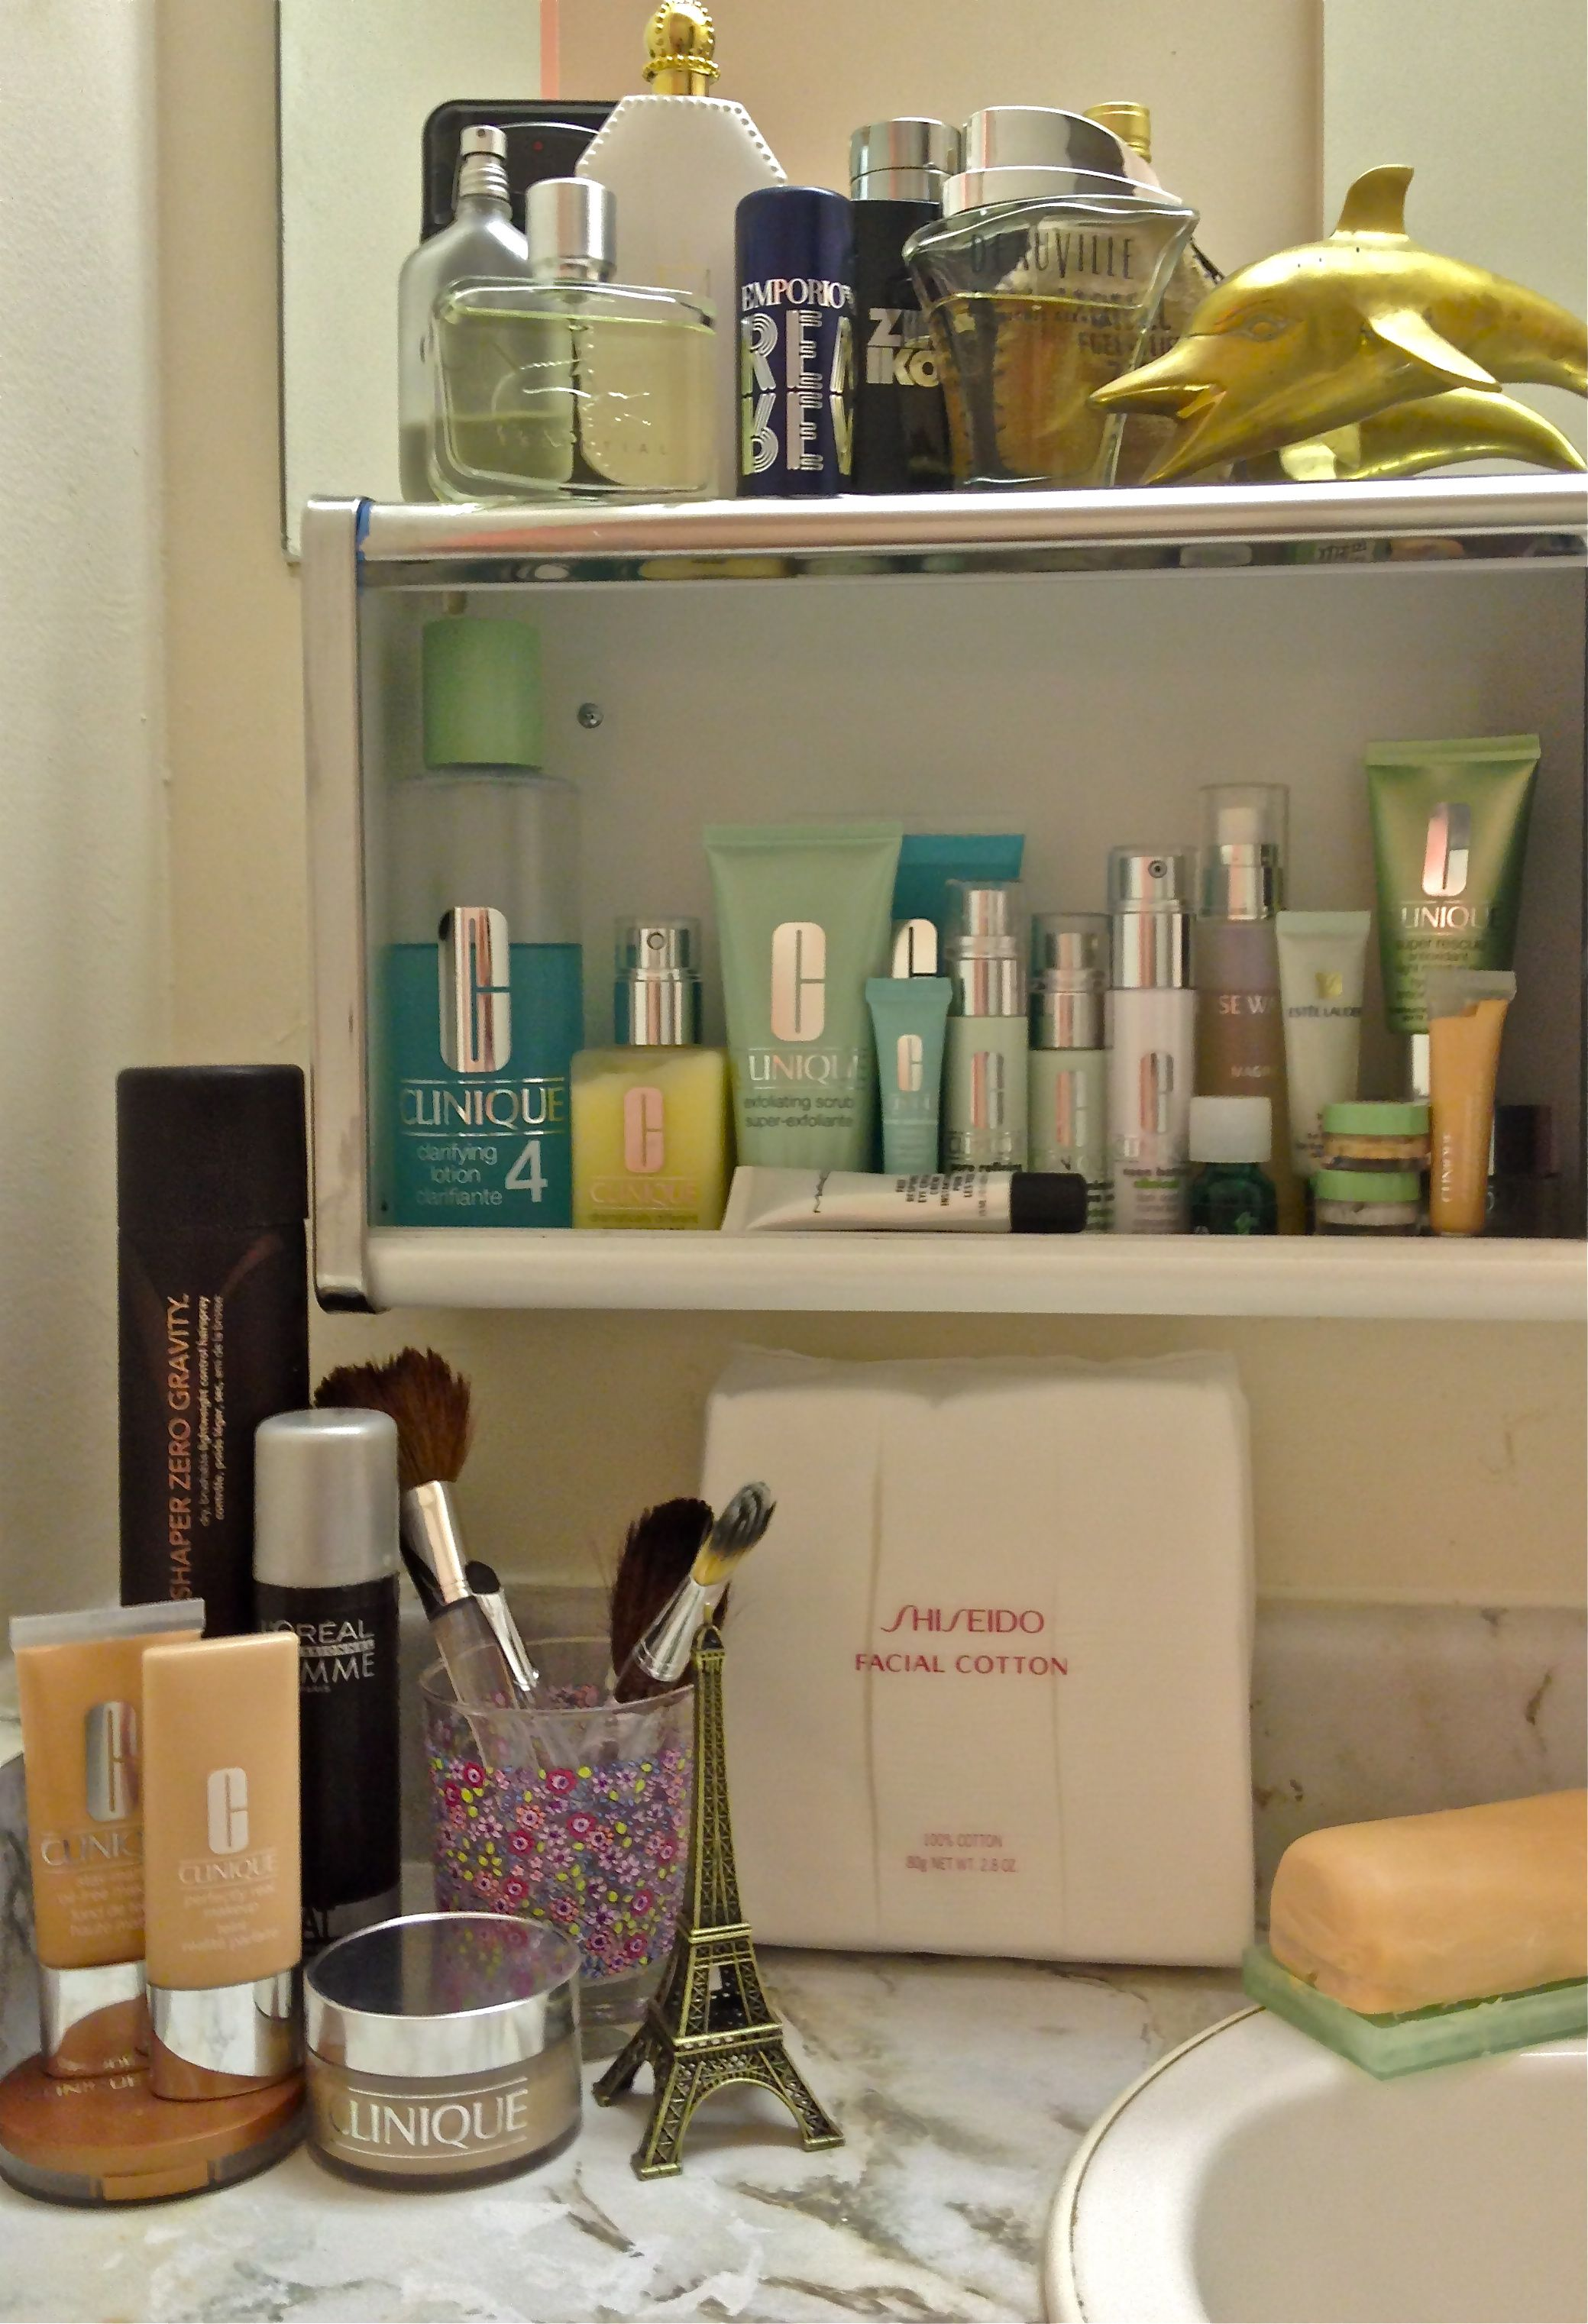 Take A Peak Inside My Beauty Cabinet #Clinique #Mac #Makeup